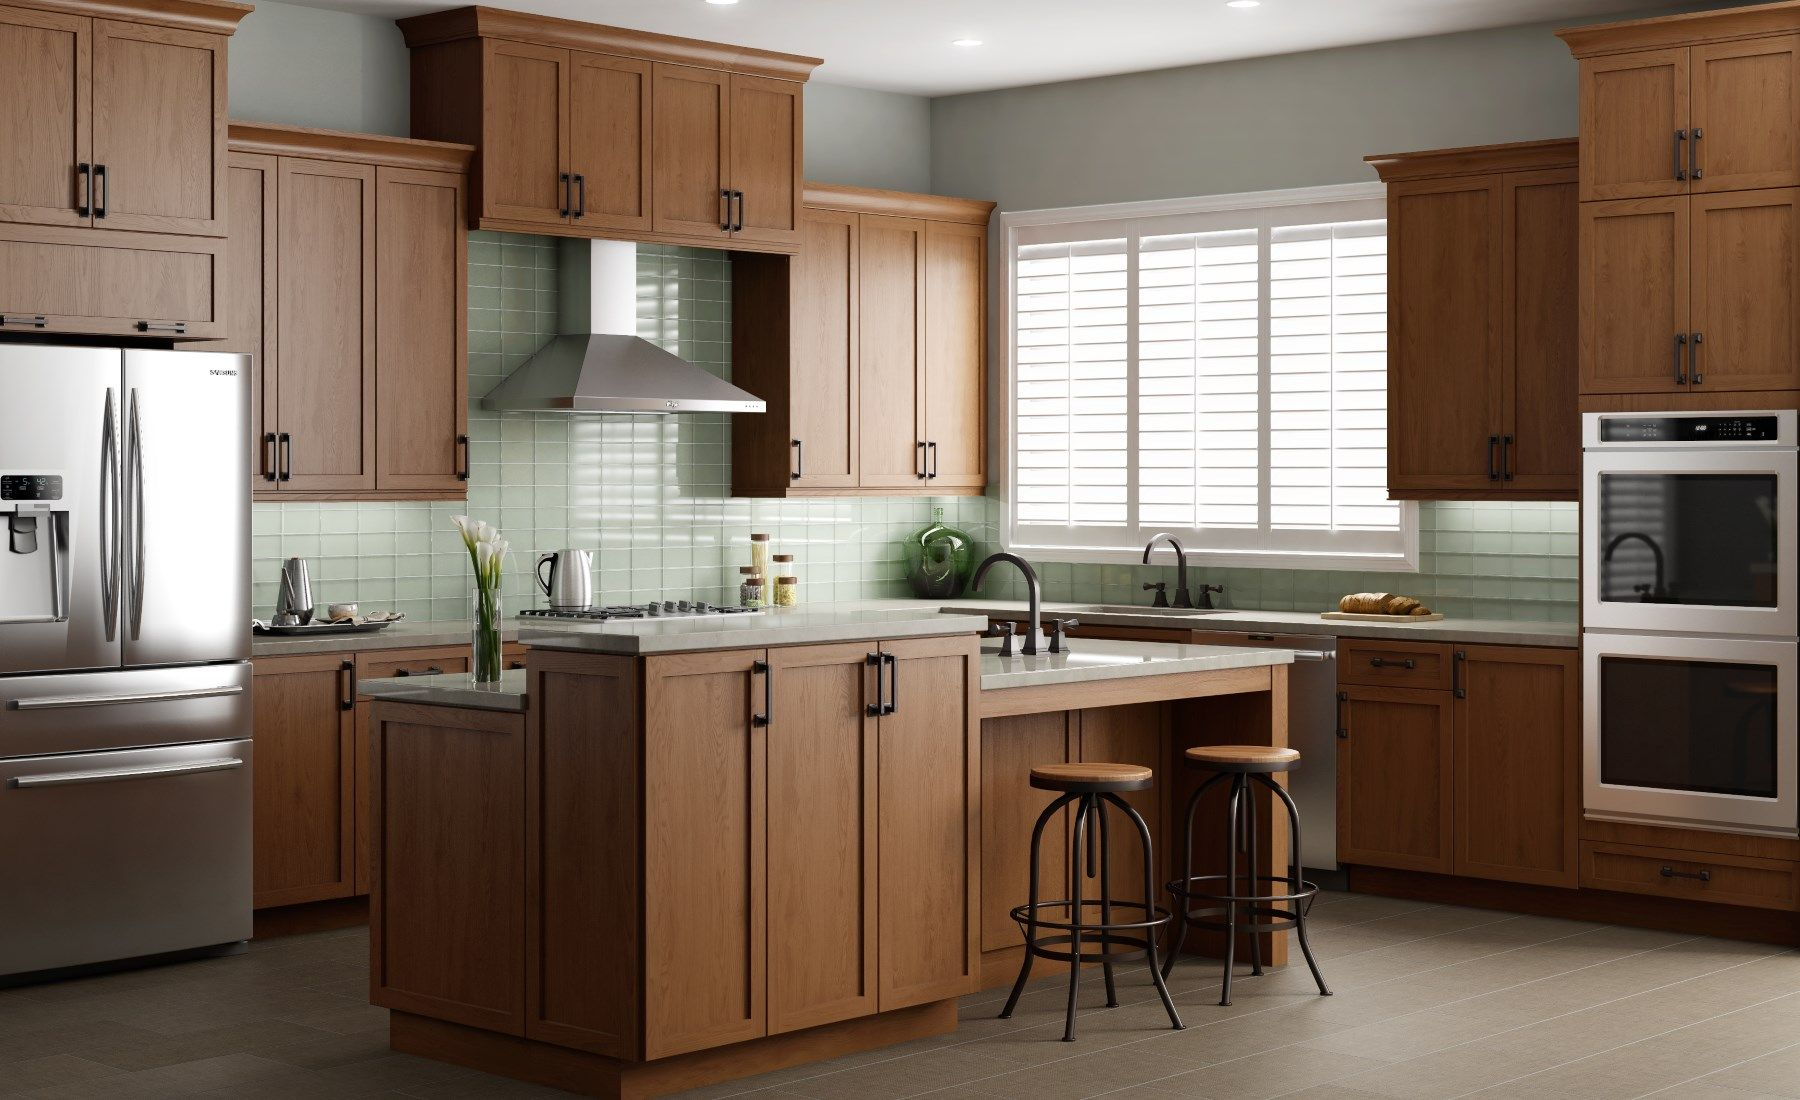 need large storage hampton bay cabinets reviews quality and sizes rh pinterest com  hampton bay kitchen cabinets reviews